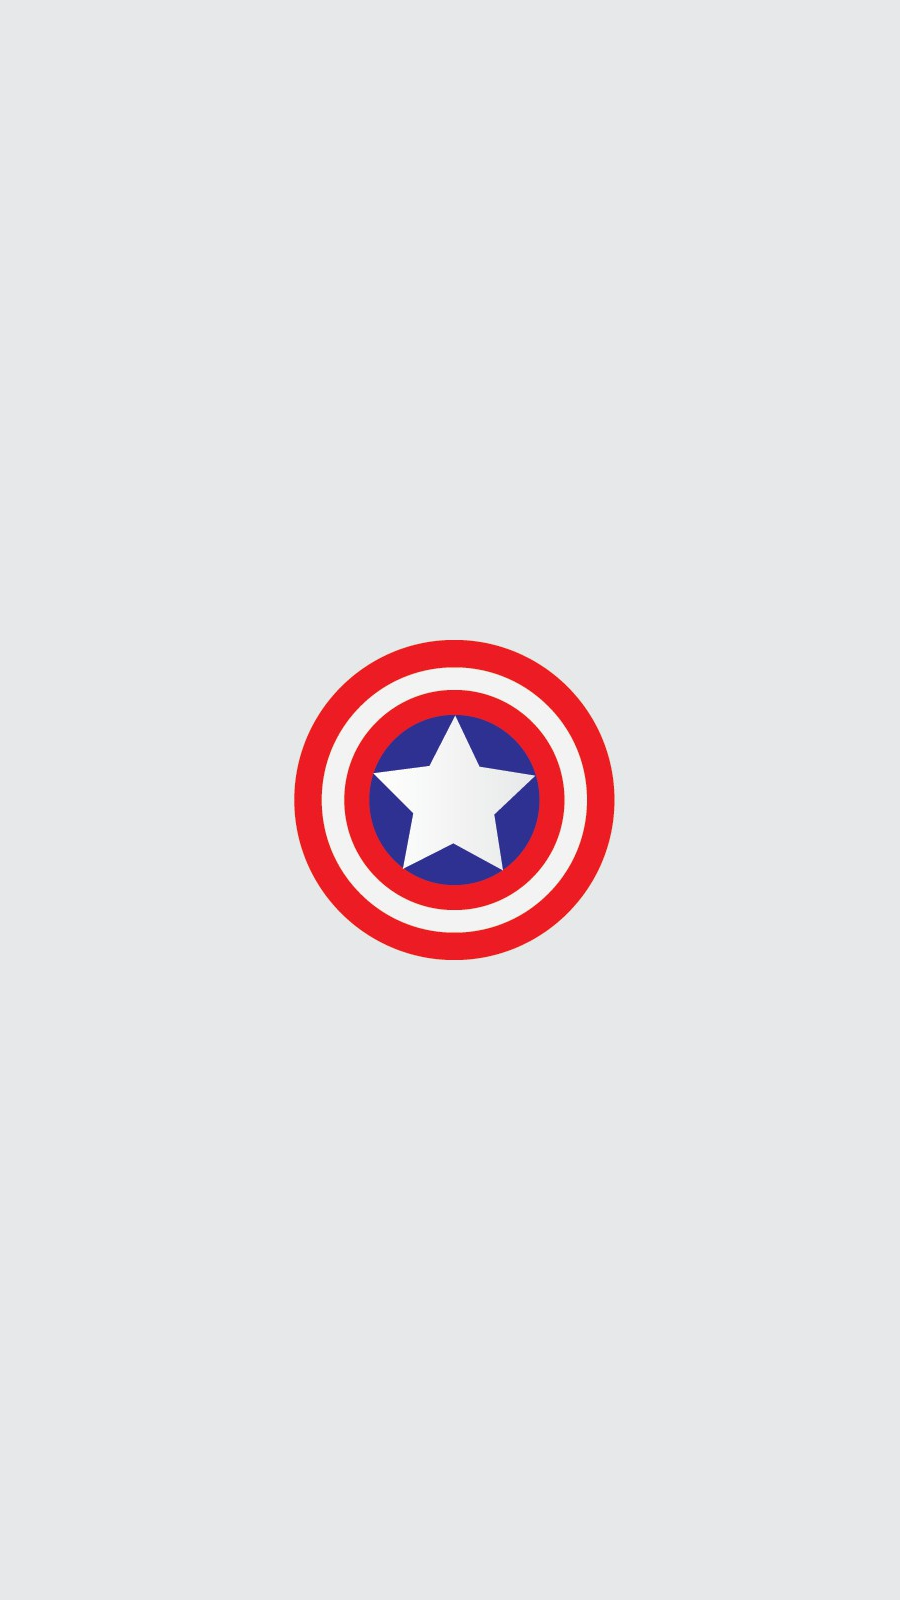 captainamericashieldiphonewallpaper iphone wallpapers